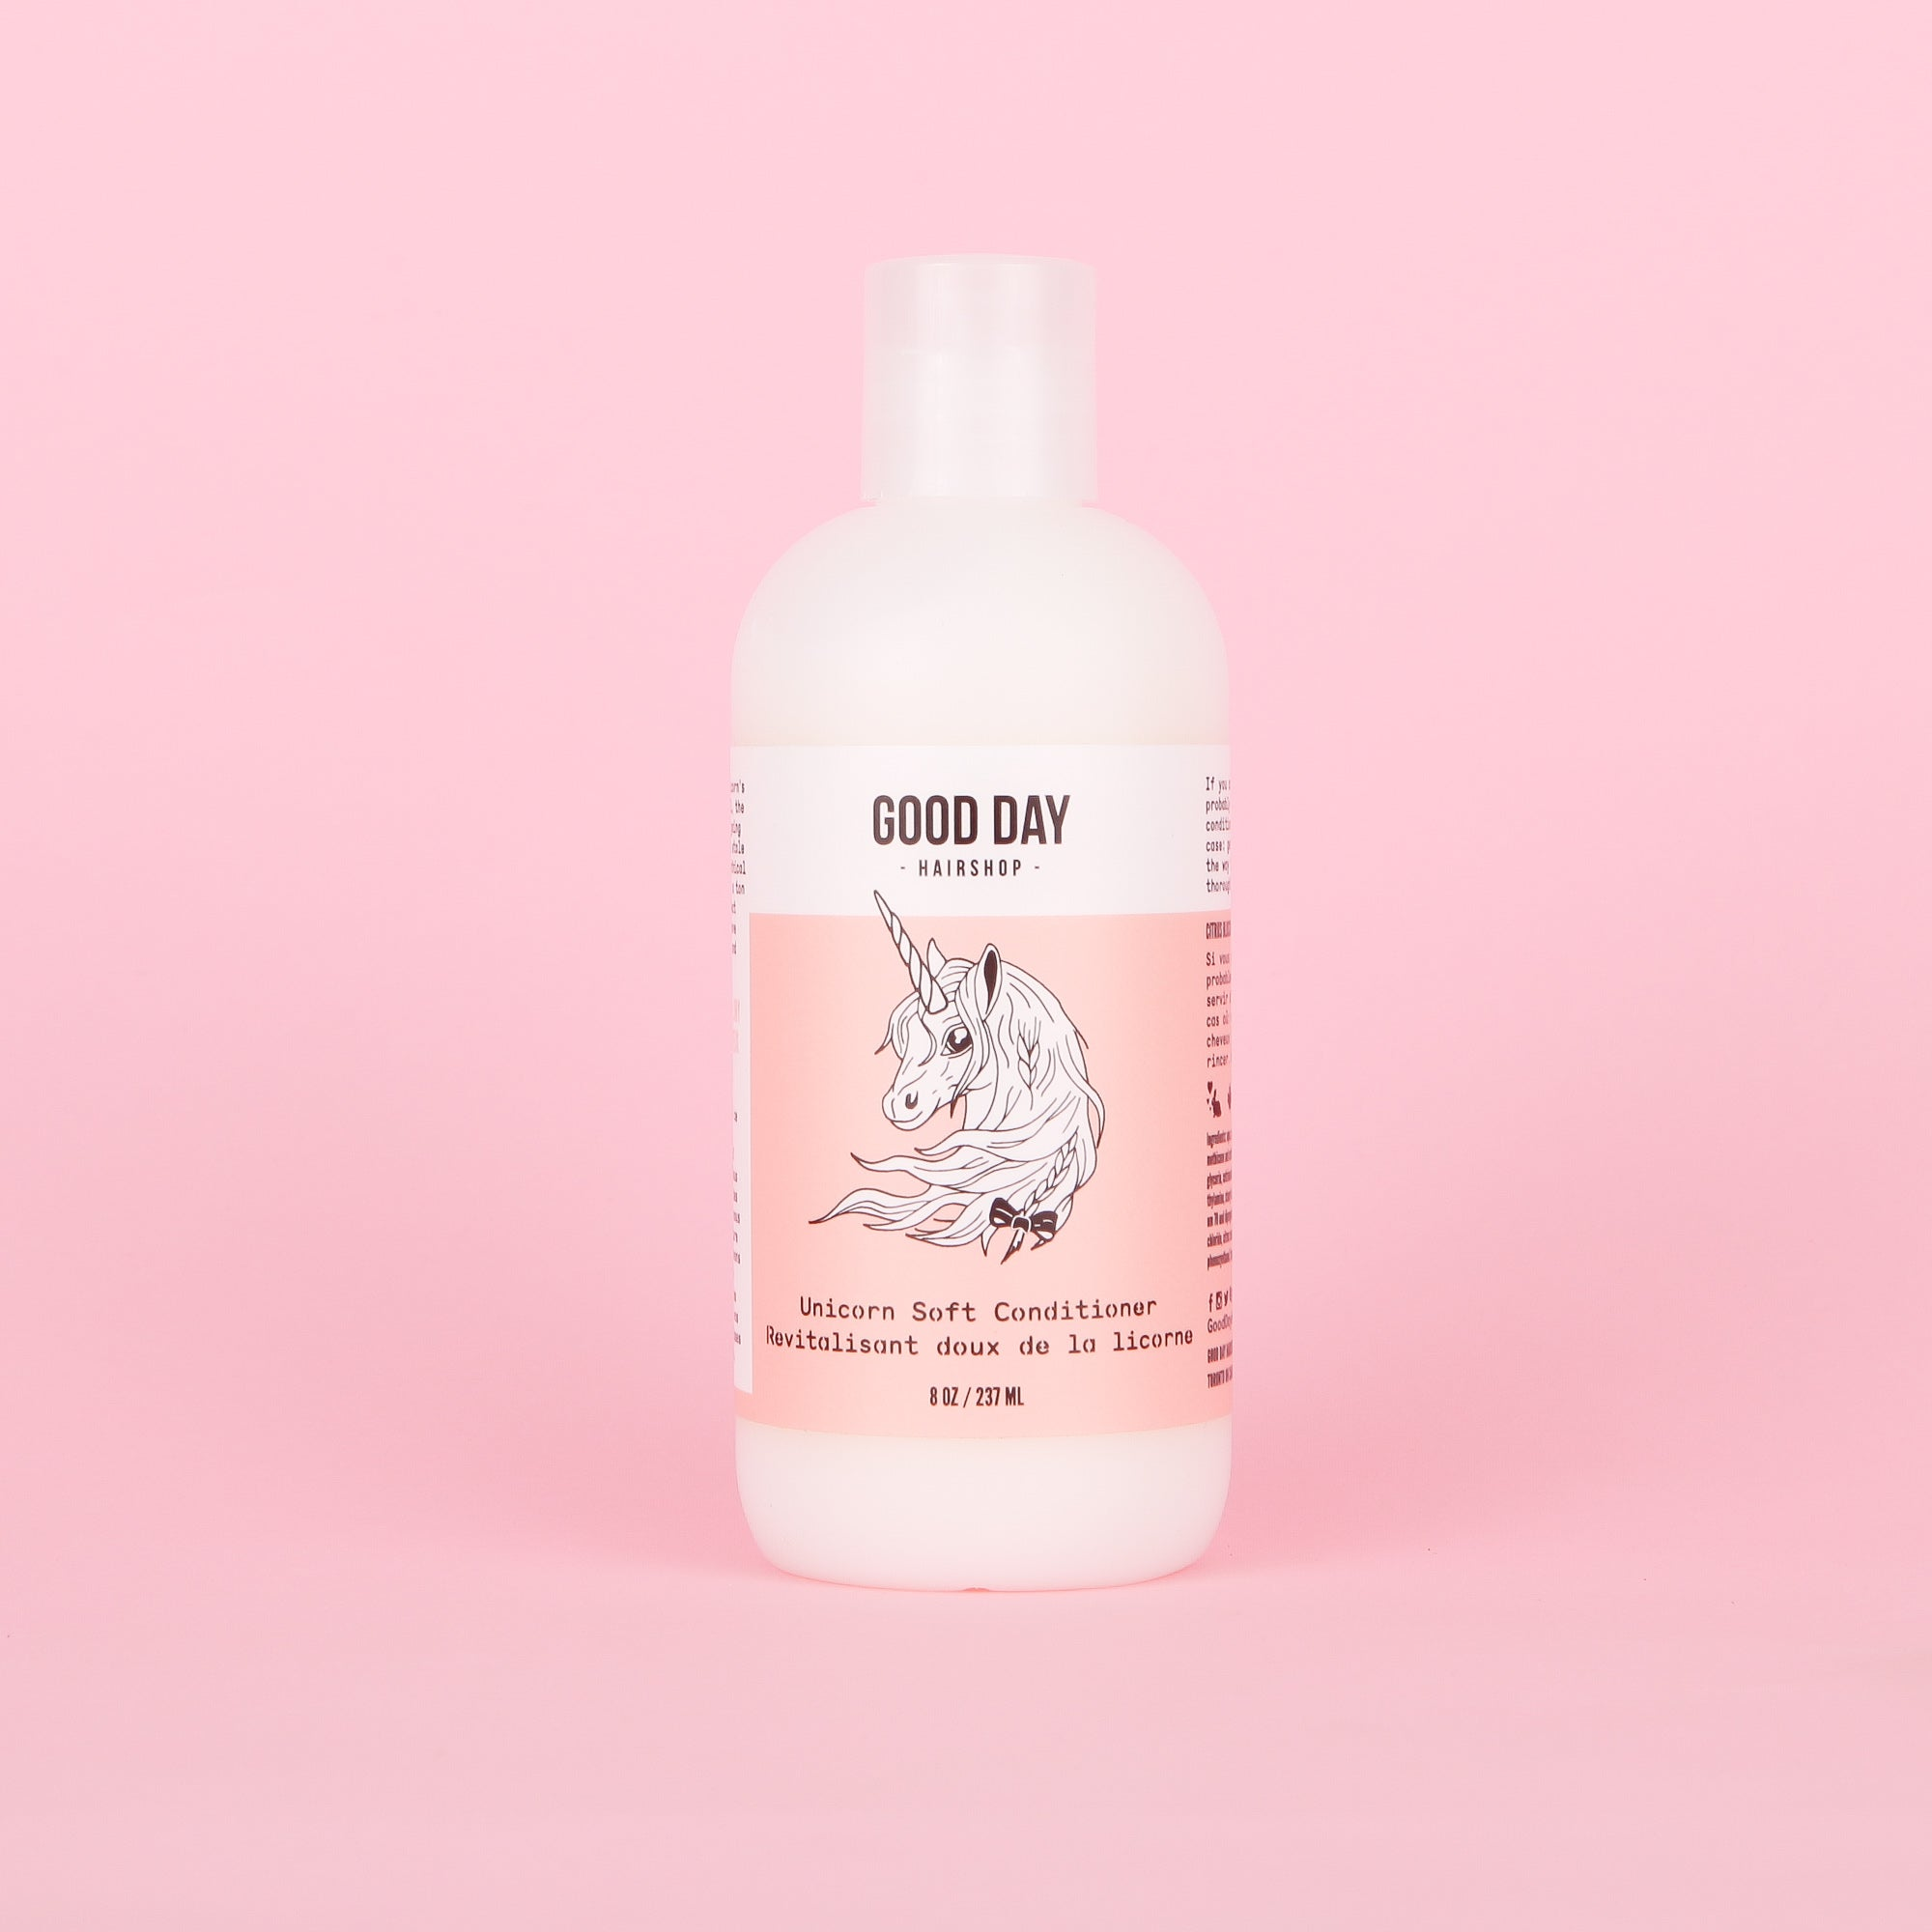 Unicorn Soft Conditioner